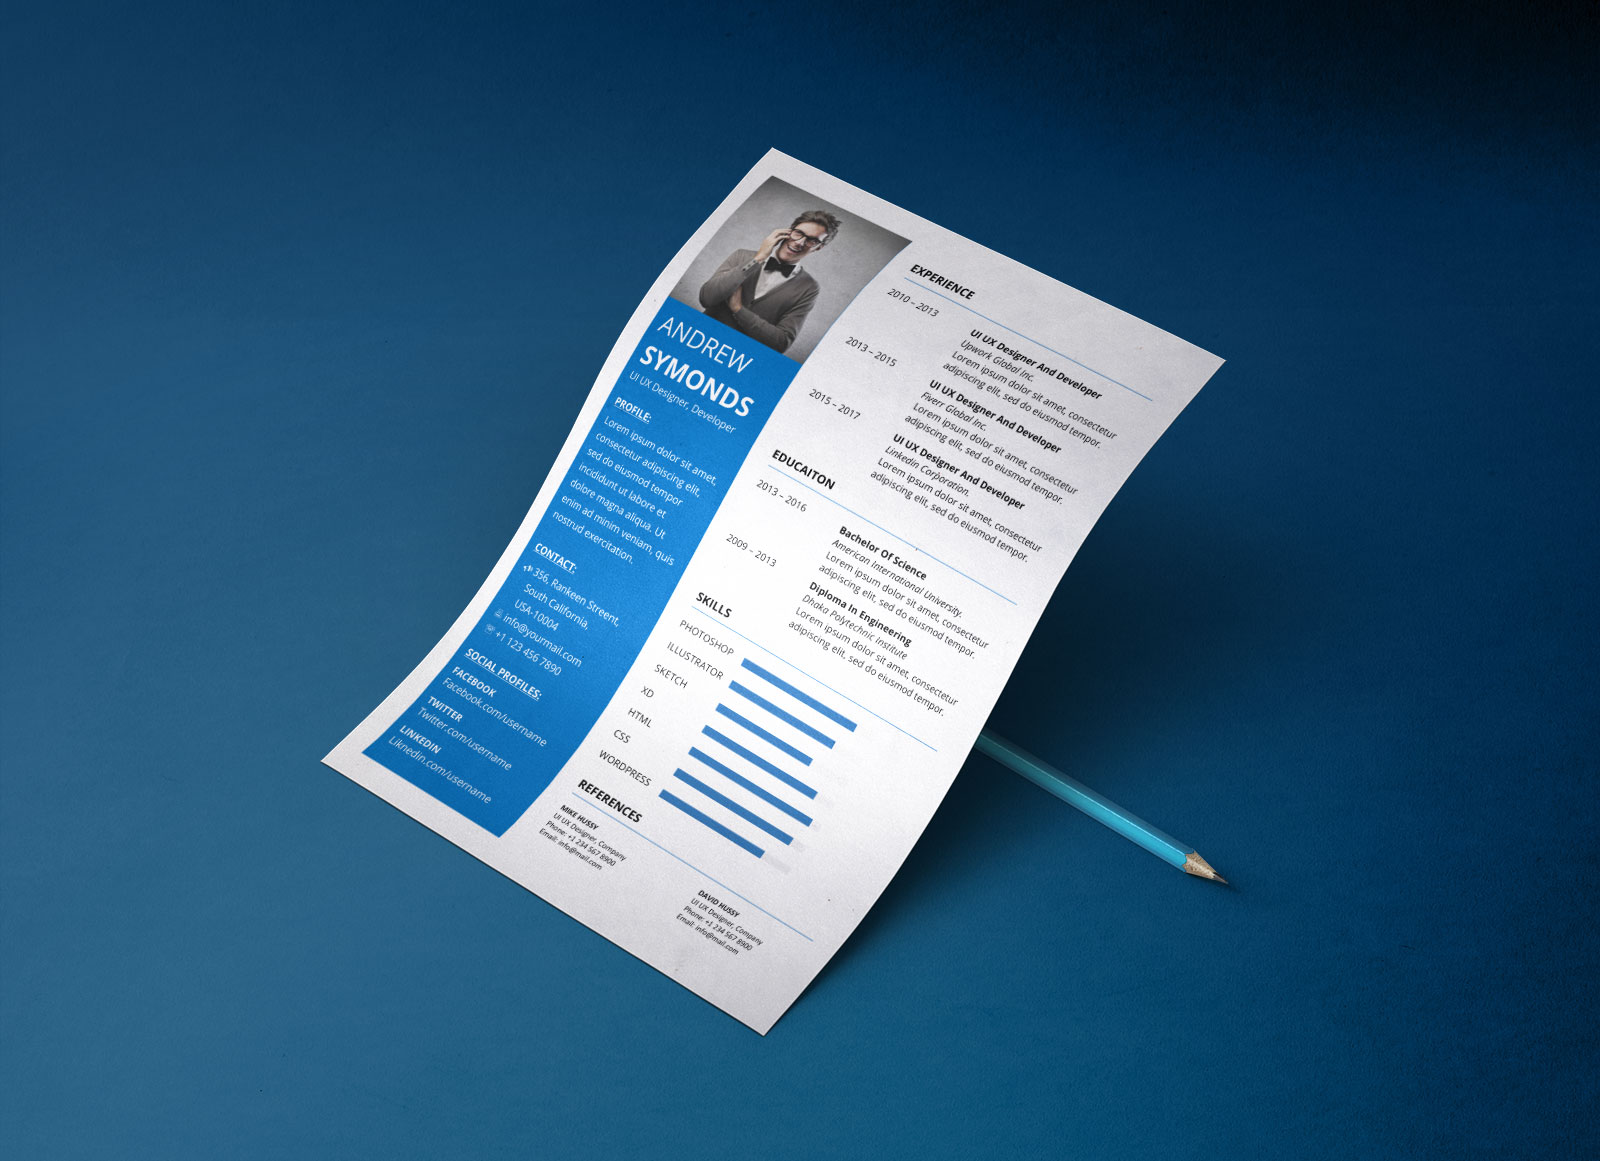 Free-Modern-Resume-Template-in-Word-DOCX-Format-2